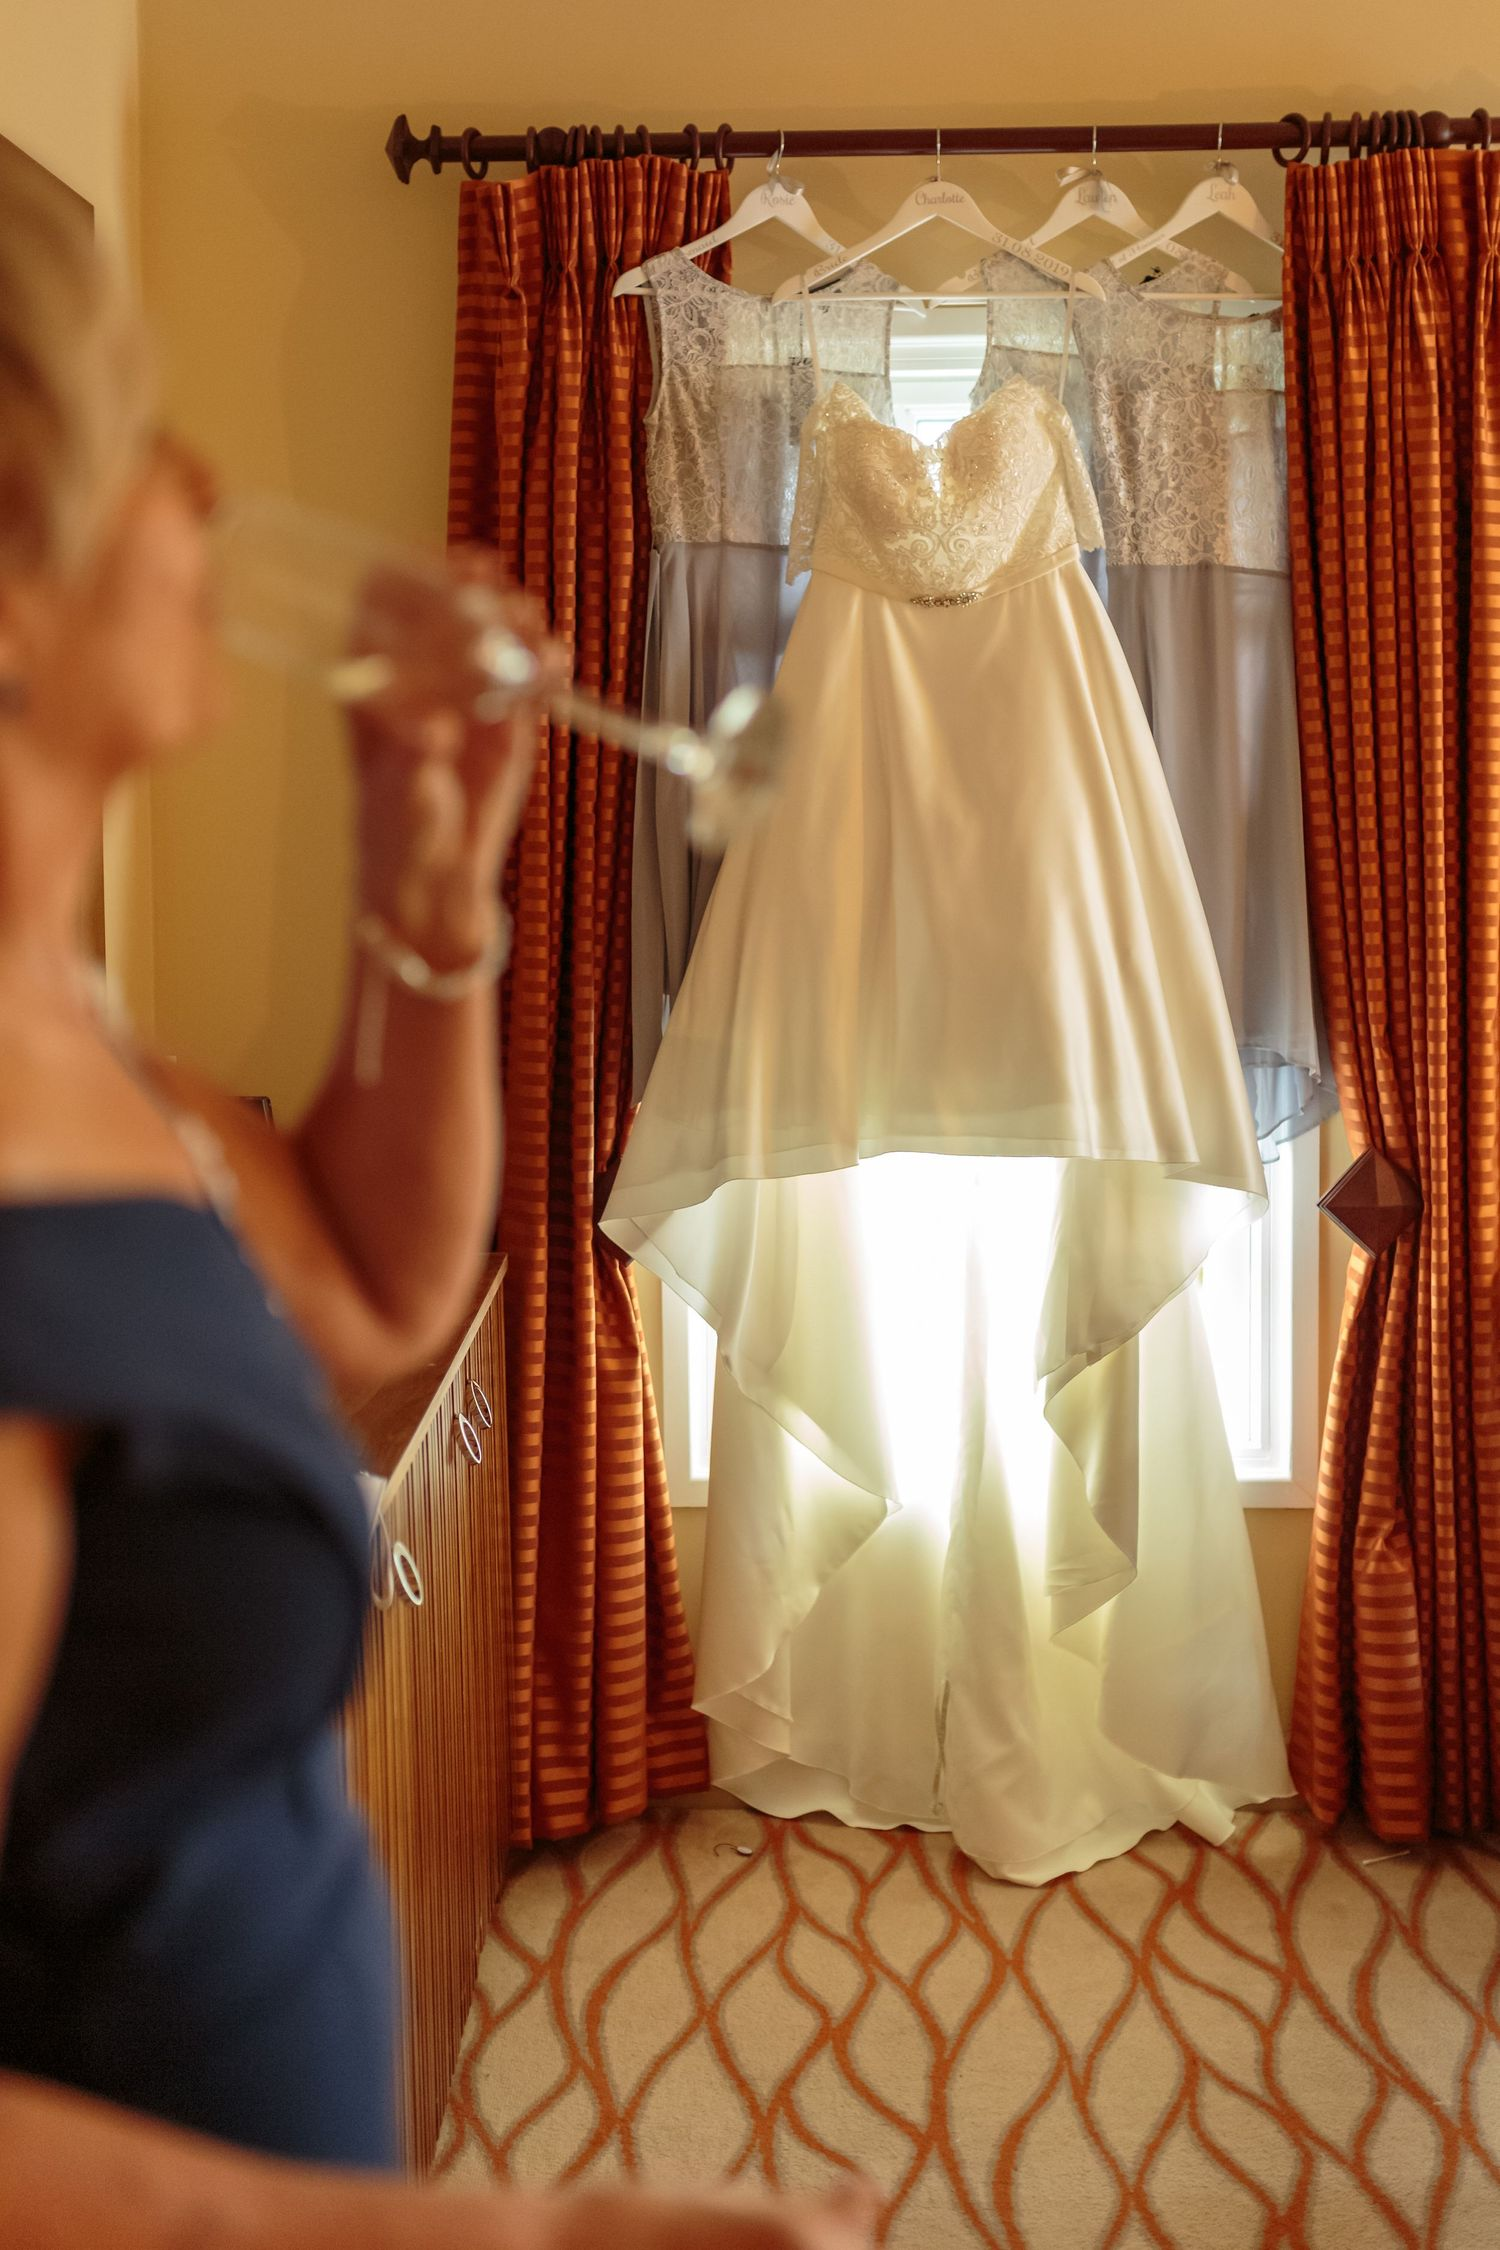 wedding dress hanging up in the window at ribby hall village mother of the bride drink of champagne in the foreground